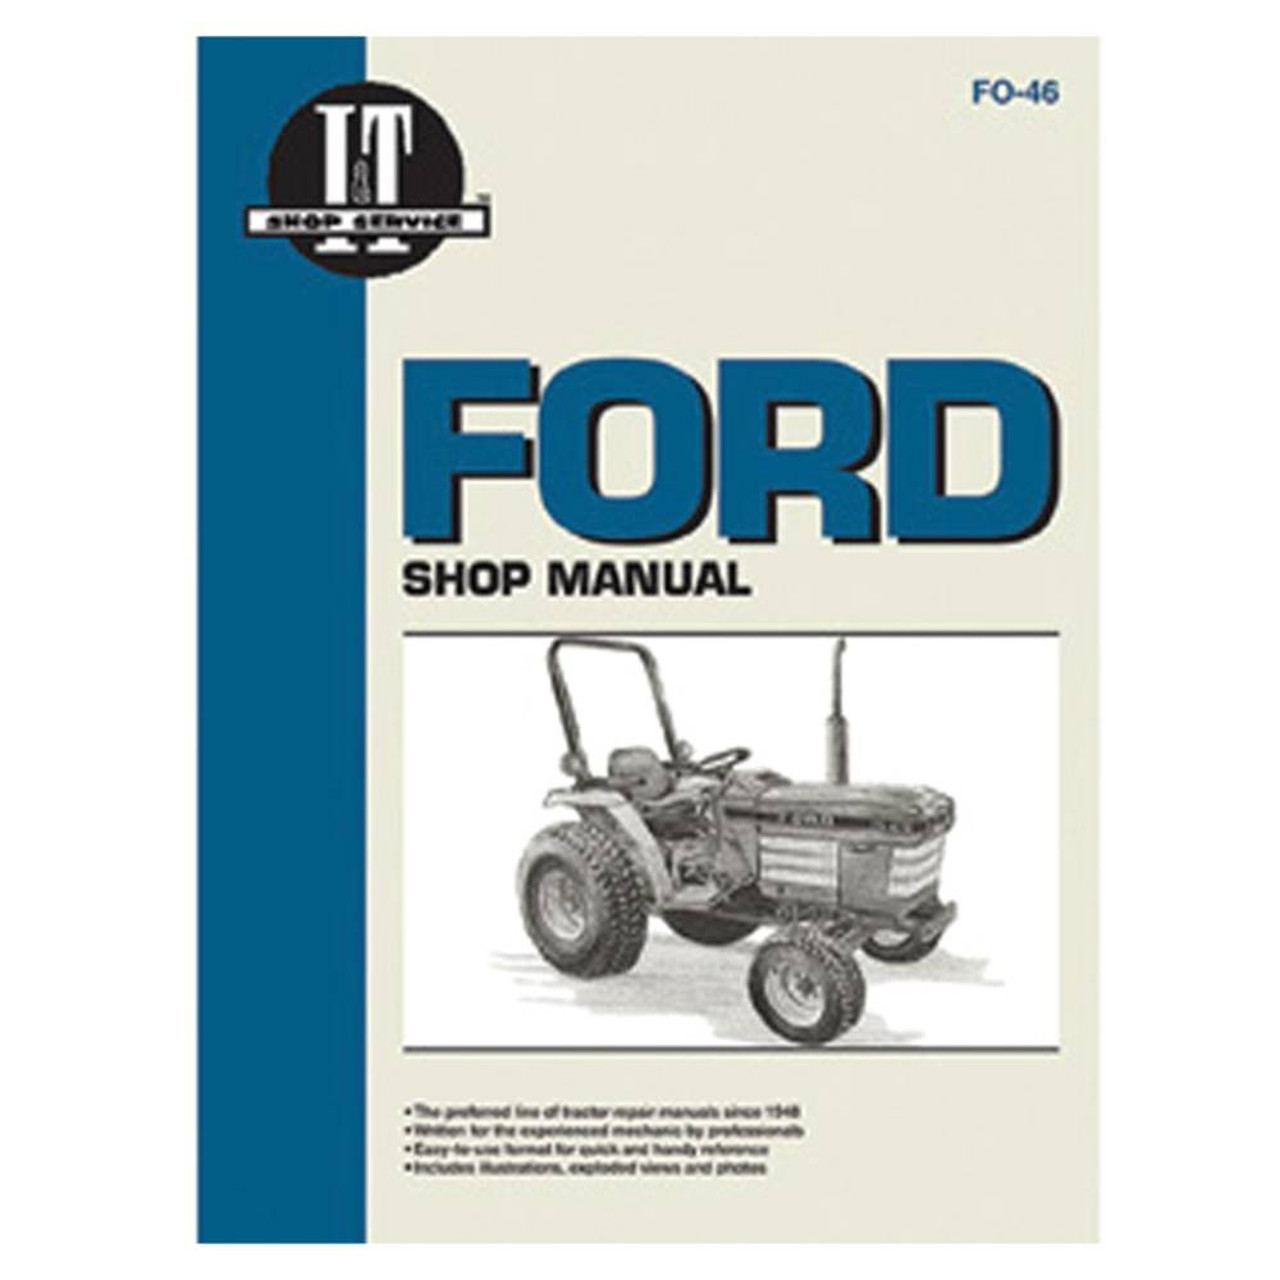 service manual ford new holland tractor fo 46 1120,1220,1320,1520,1720,1920,2120 Ford 2000 Tractor Wiring Diagram